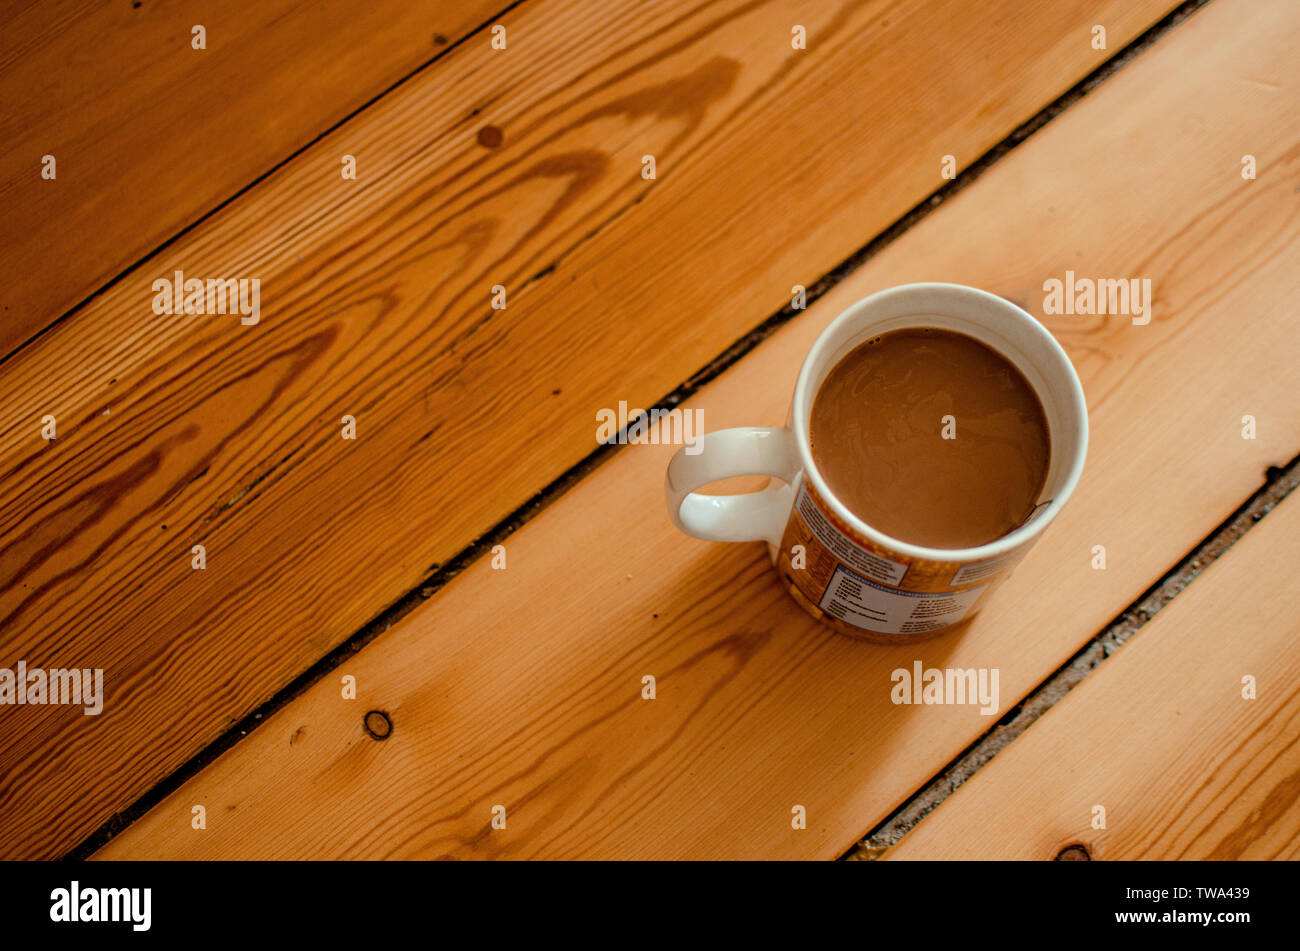 Wpc Dielen Nrw Dielen Stock Photos Dielen Stock Images Alamy